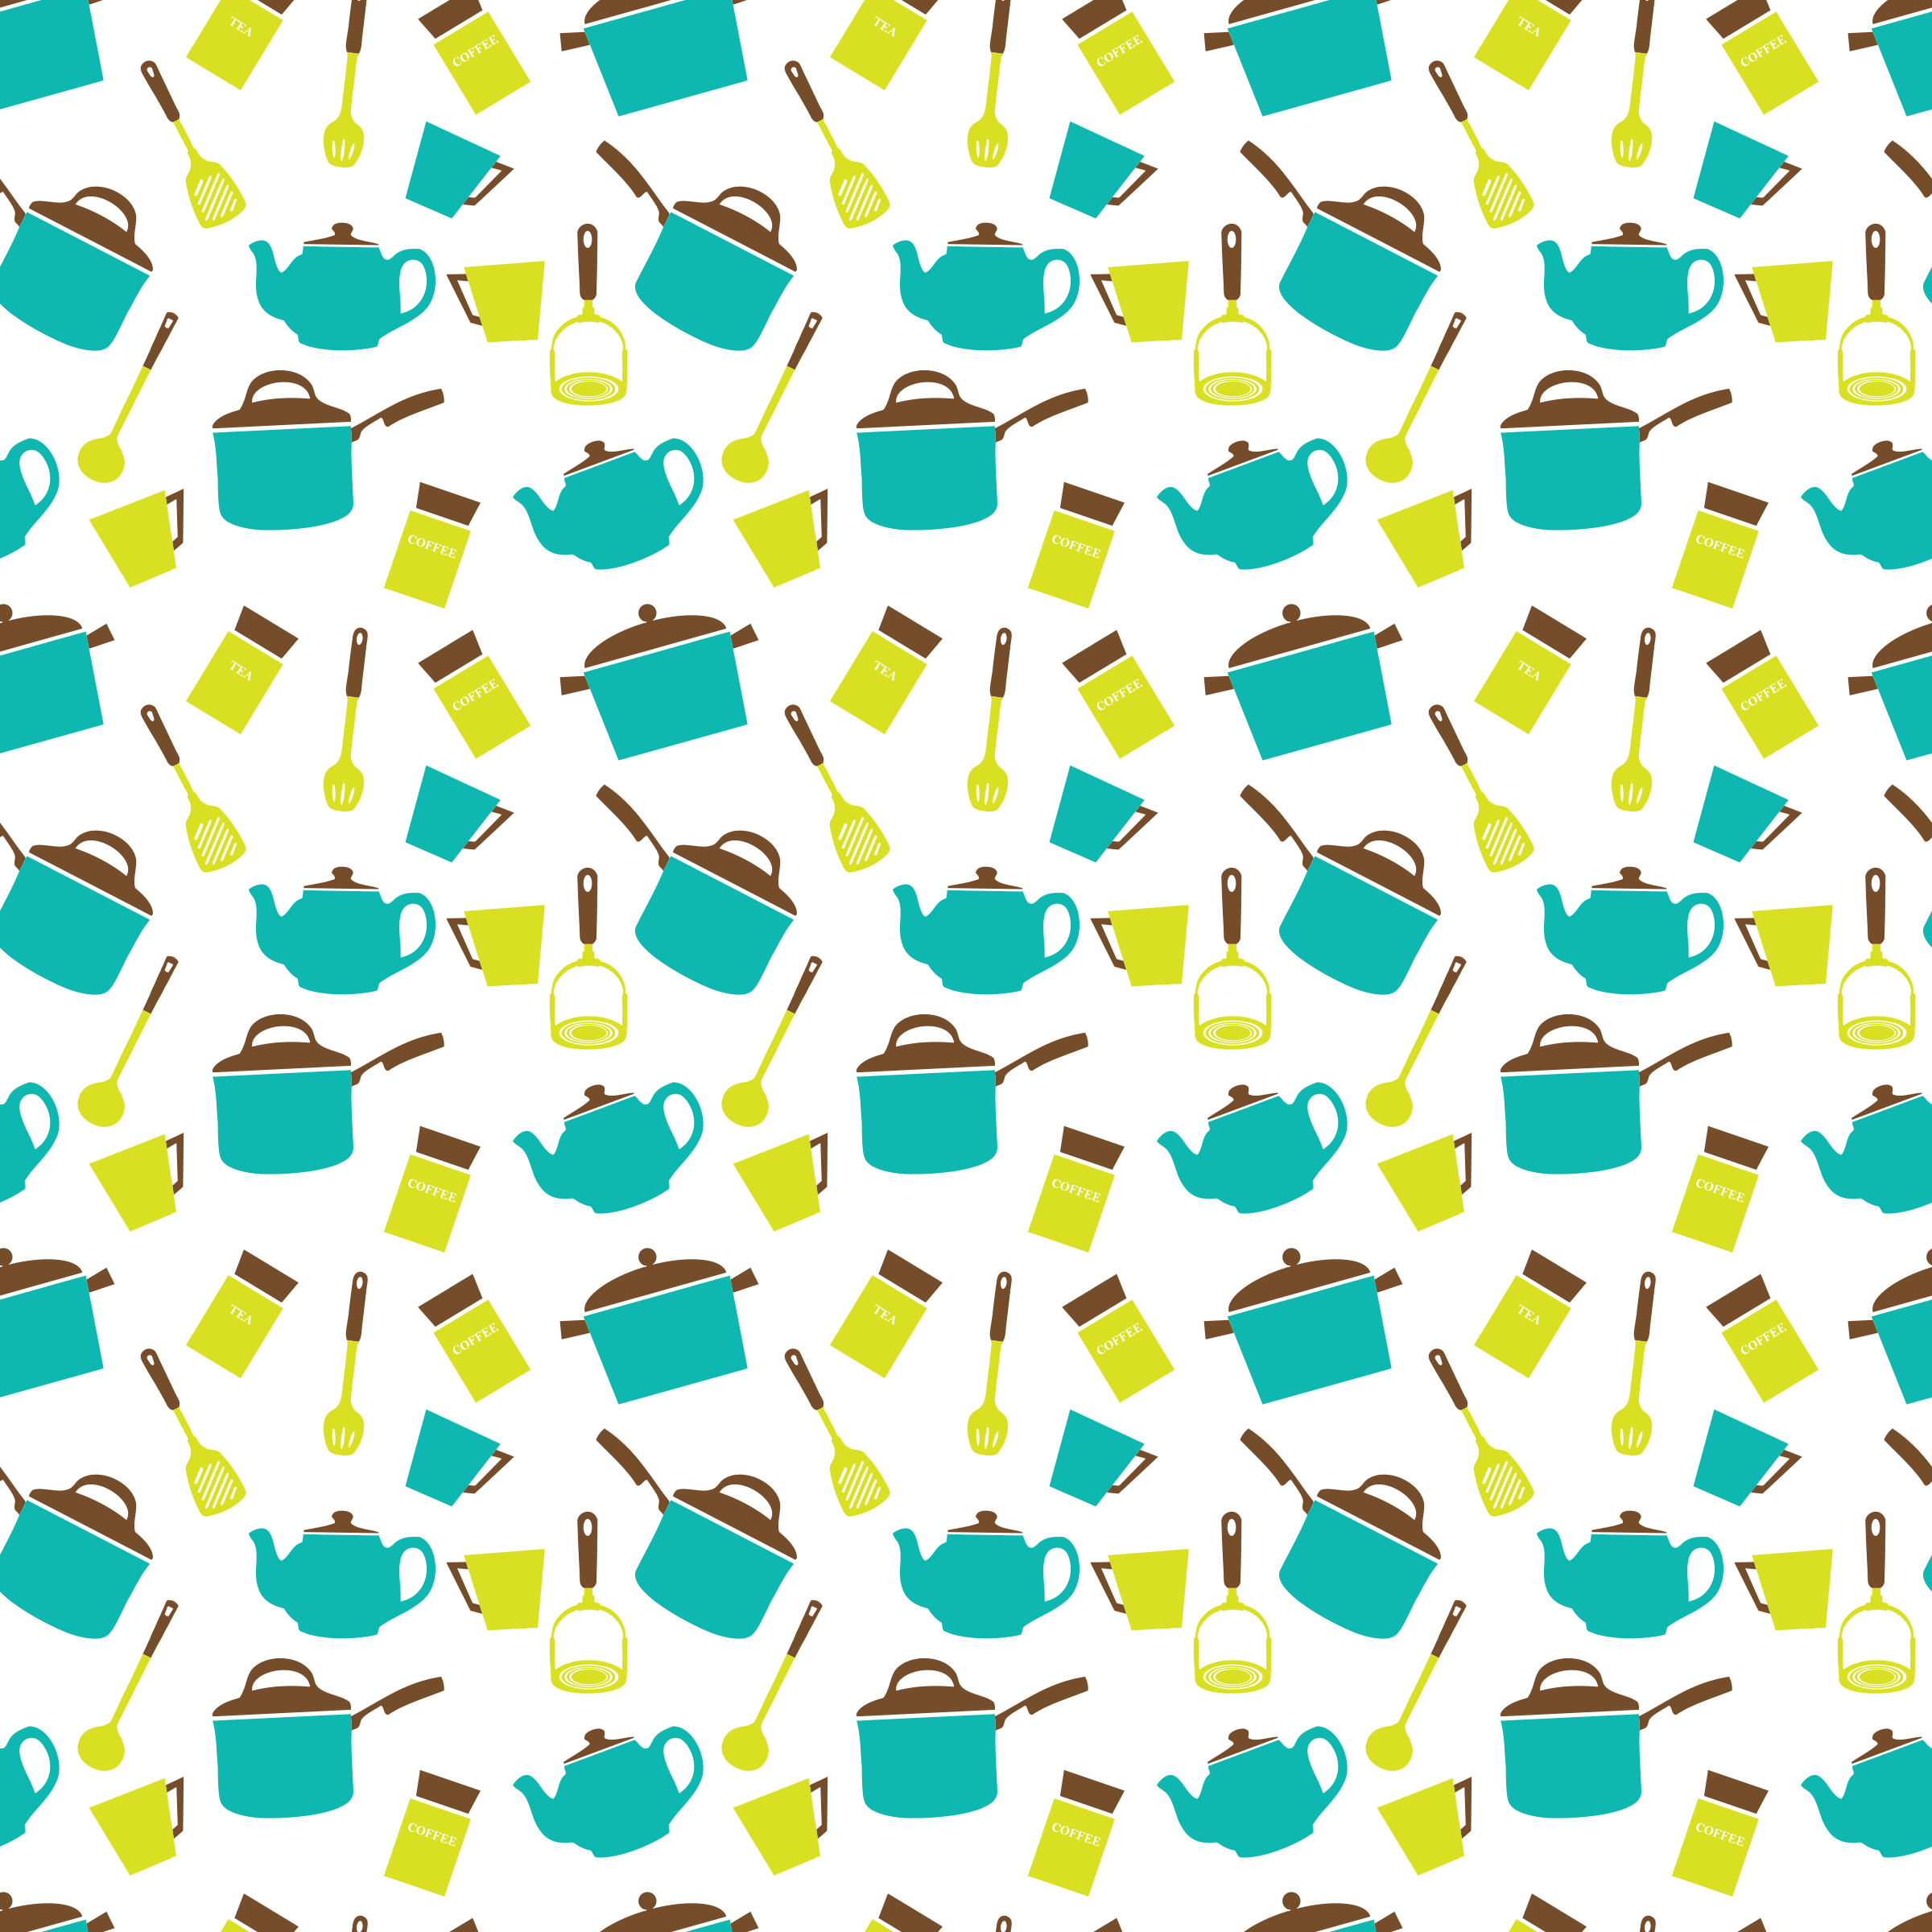 Kitchen Utensils Crockery Seamless Pattern By Yamachem